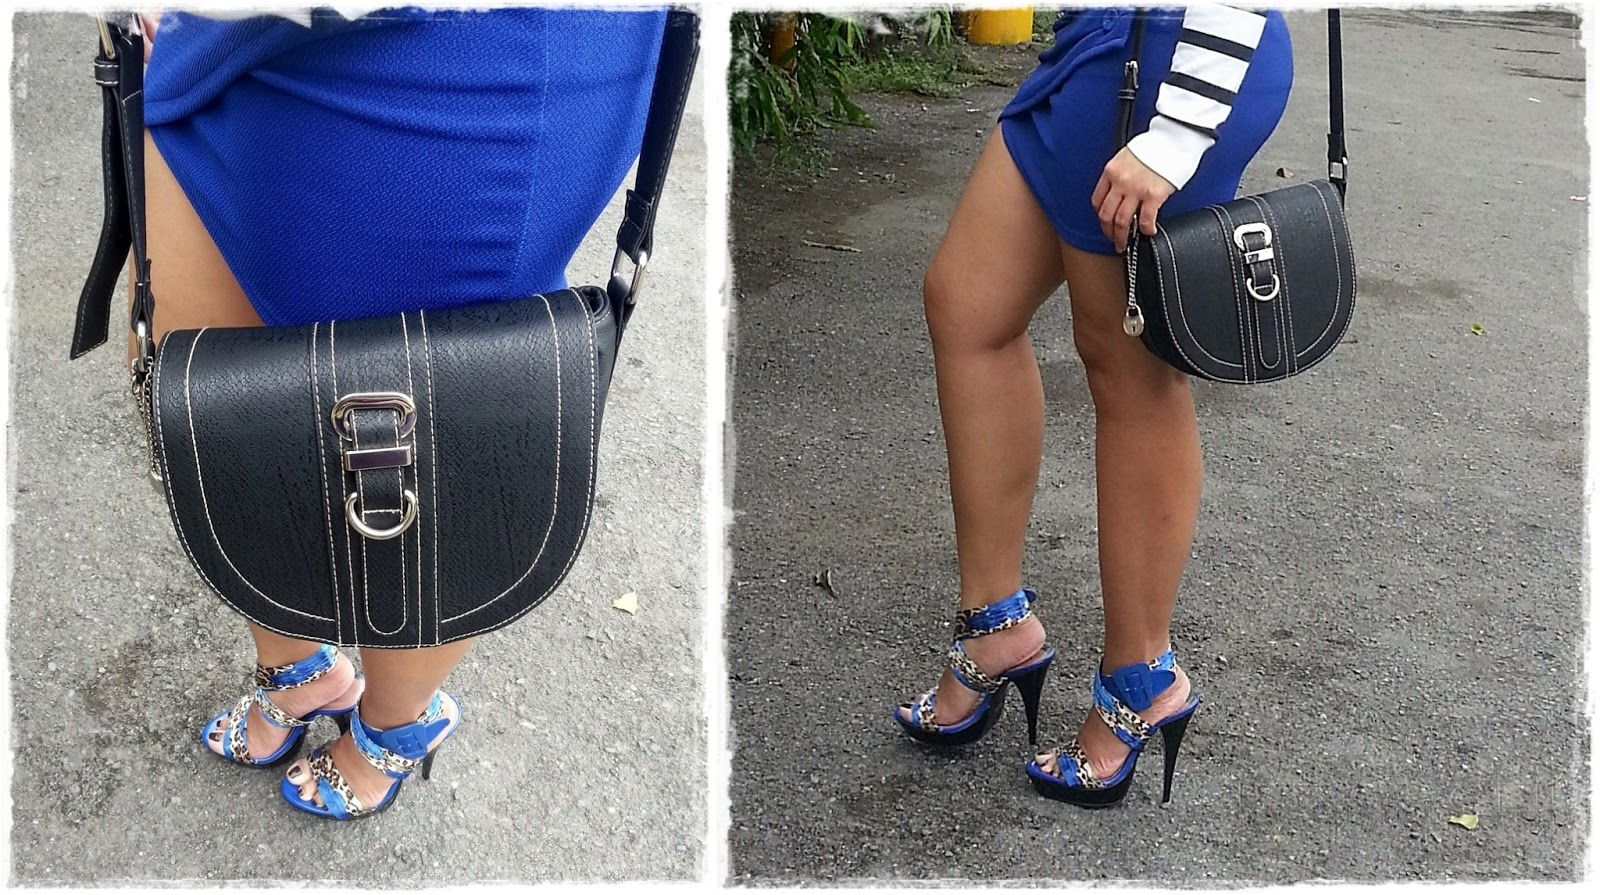 Cln shoes sandals philippines - Sweater Nautica Skirt Thrifted Gold Flats Payless Heels Gibi Shoes Collection Bag Celine Cln Earrings Divisoria Hair Goody Spin Pins